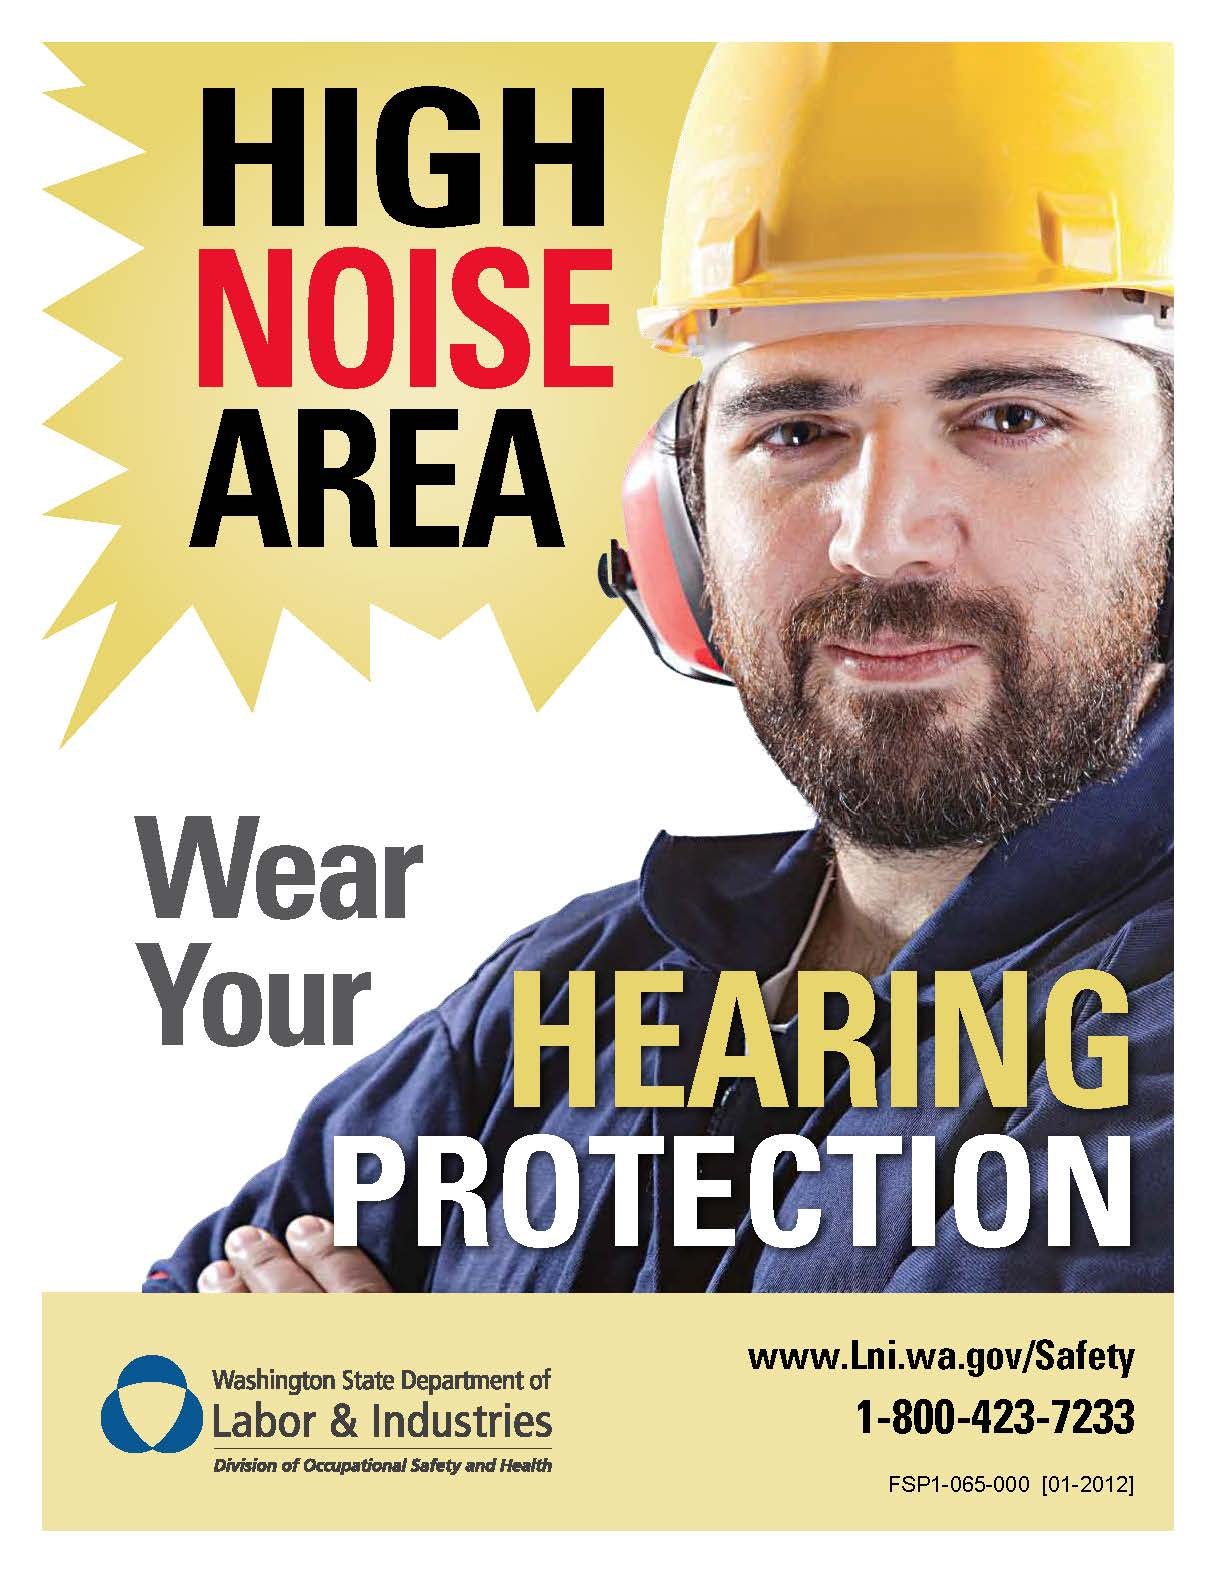 Wear your hearing protection in high noise areas